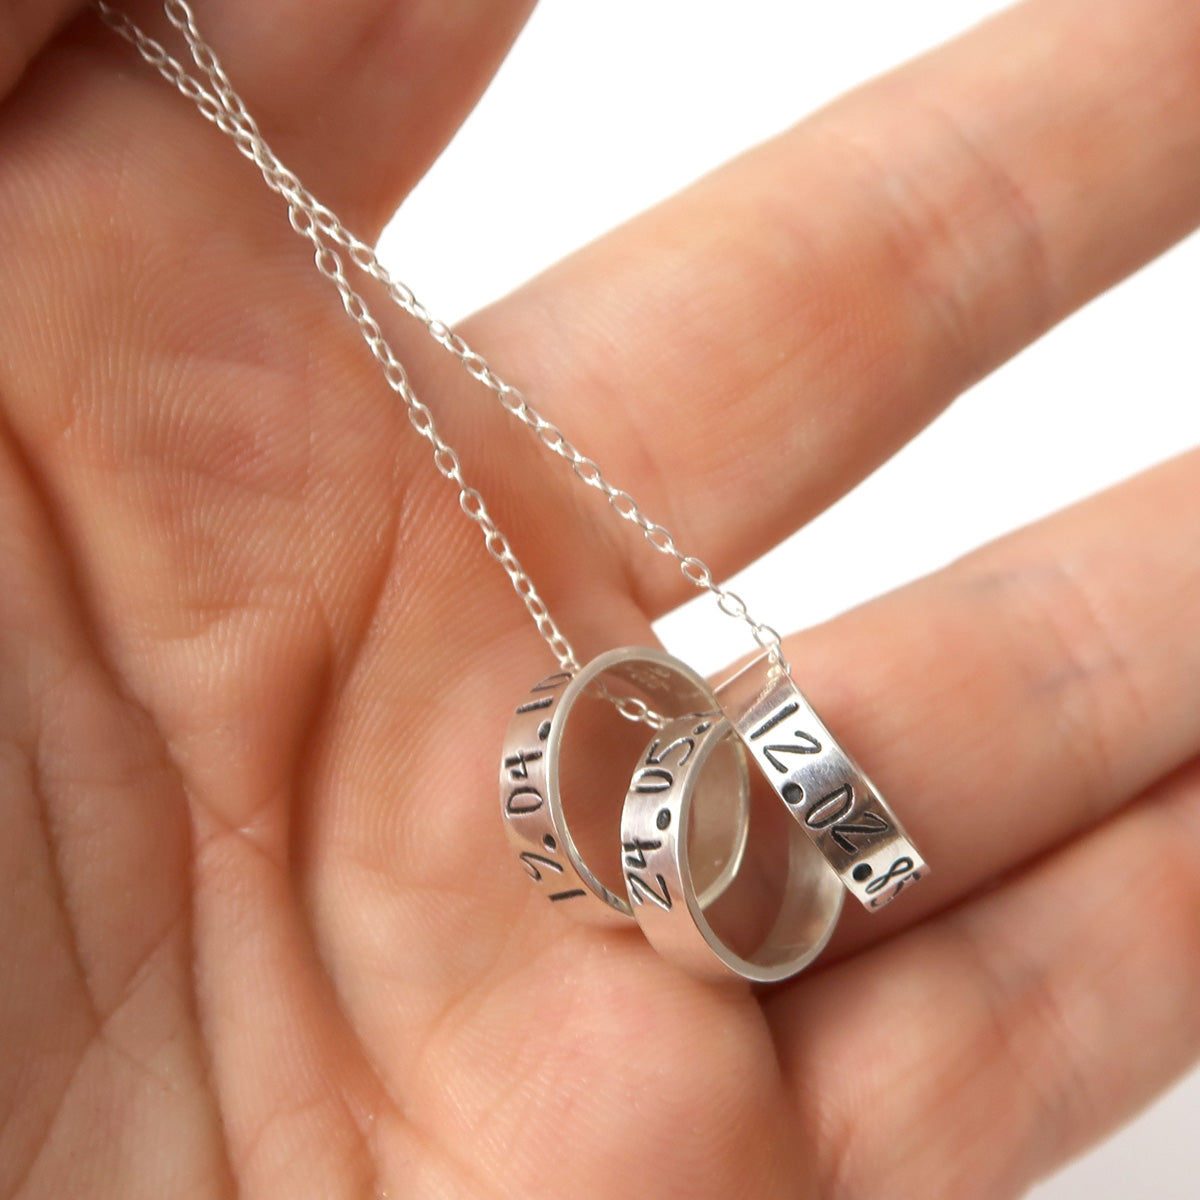 Ring Charm Necklaces